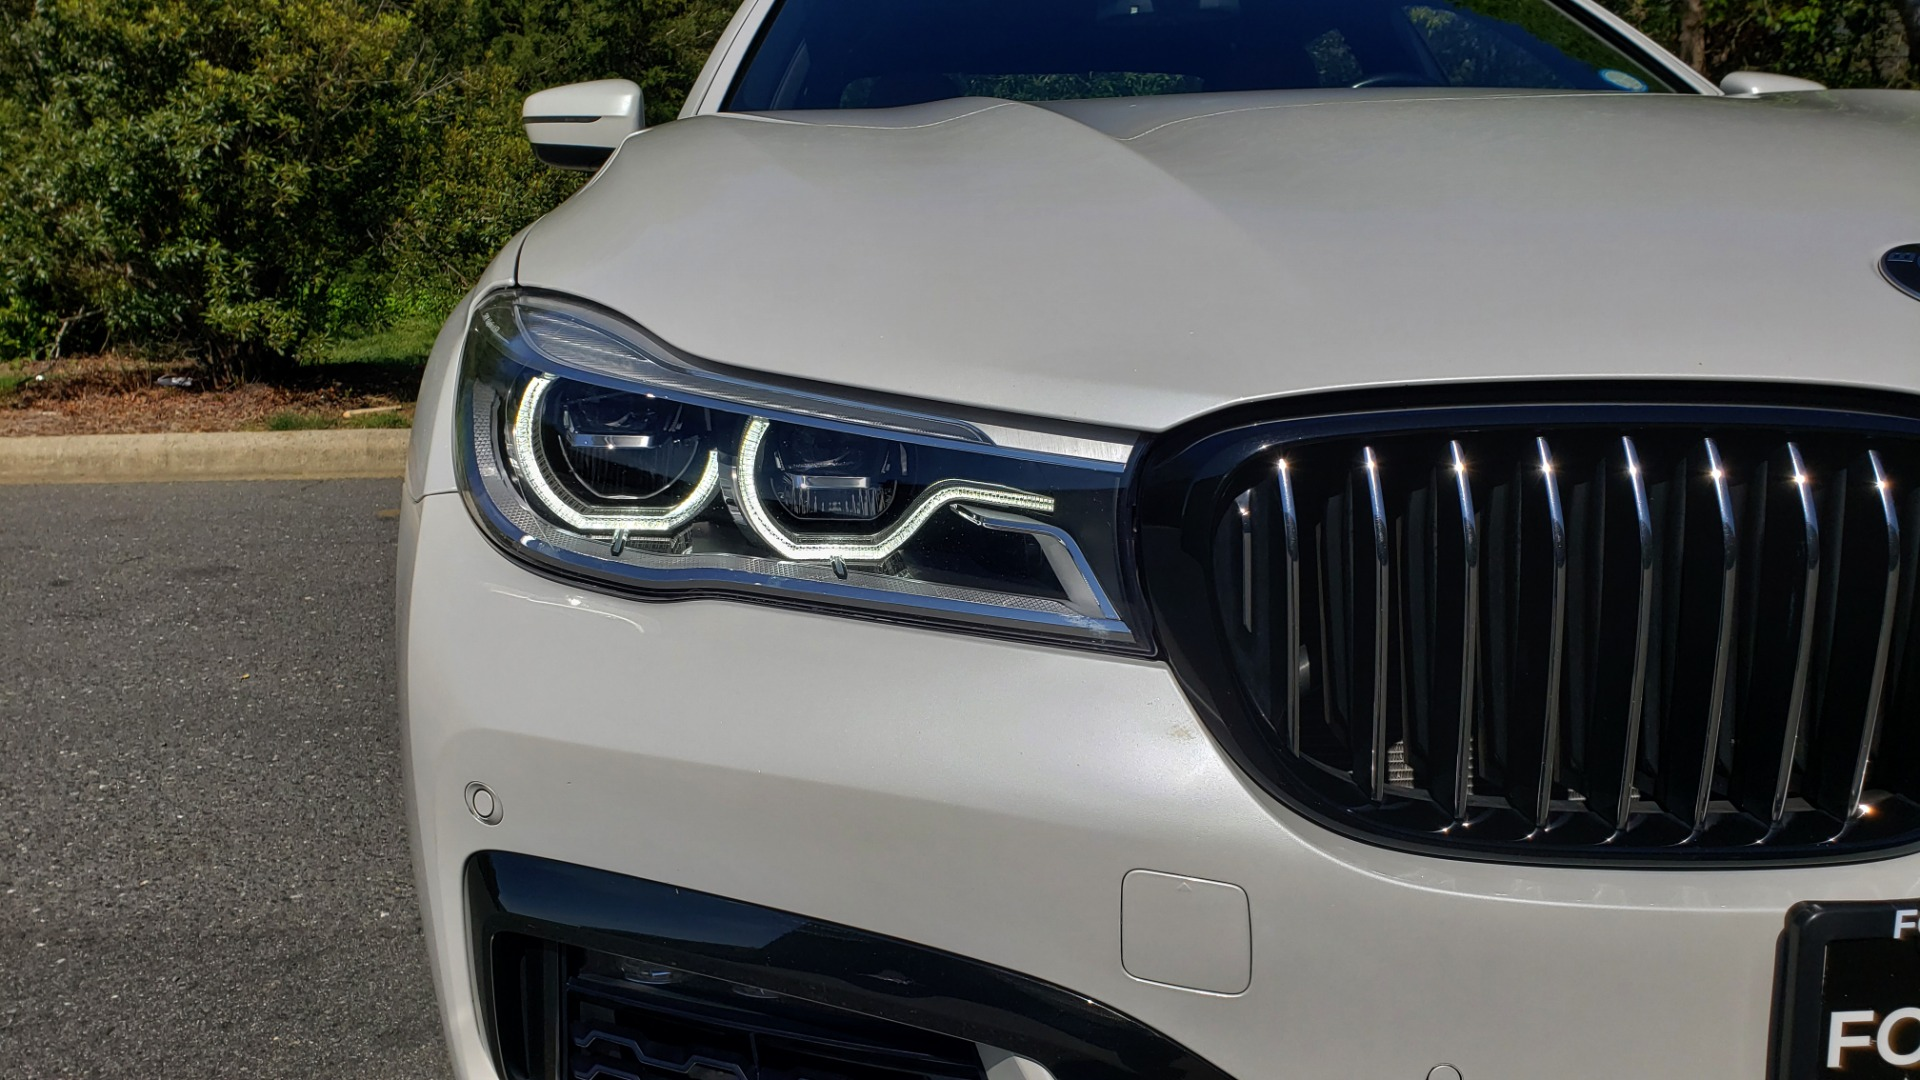 Used 2017 BMW 7 SERIES 750I XDRIVE / M-SPORT / EXEC PKG / DRVR ASST PLUS II / CLD WTHR for sale $48,495 at Formula Imports in Charlotte NC 28227 16